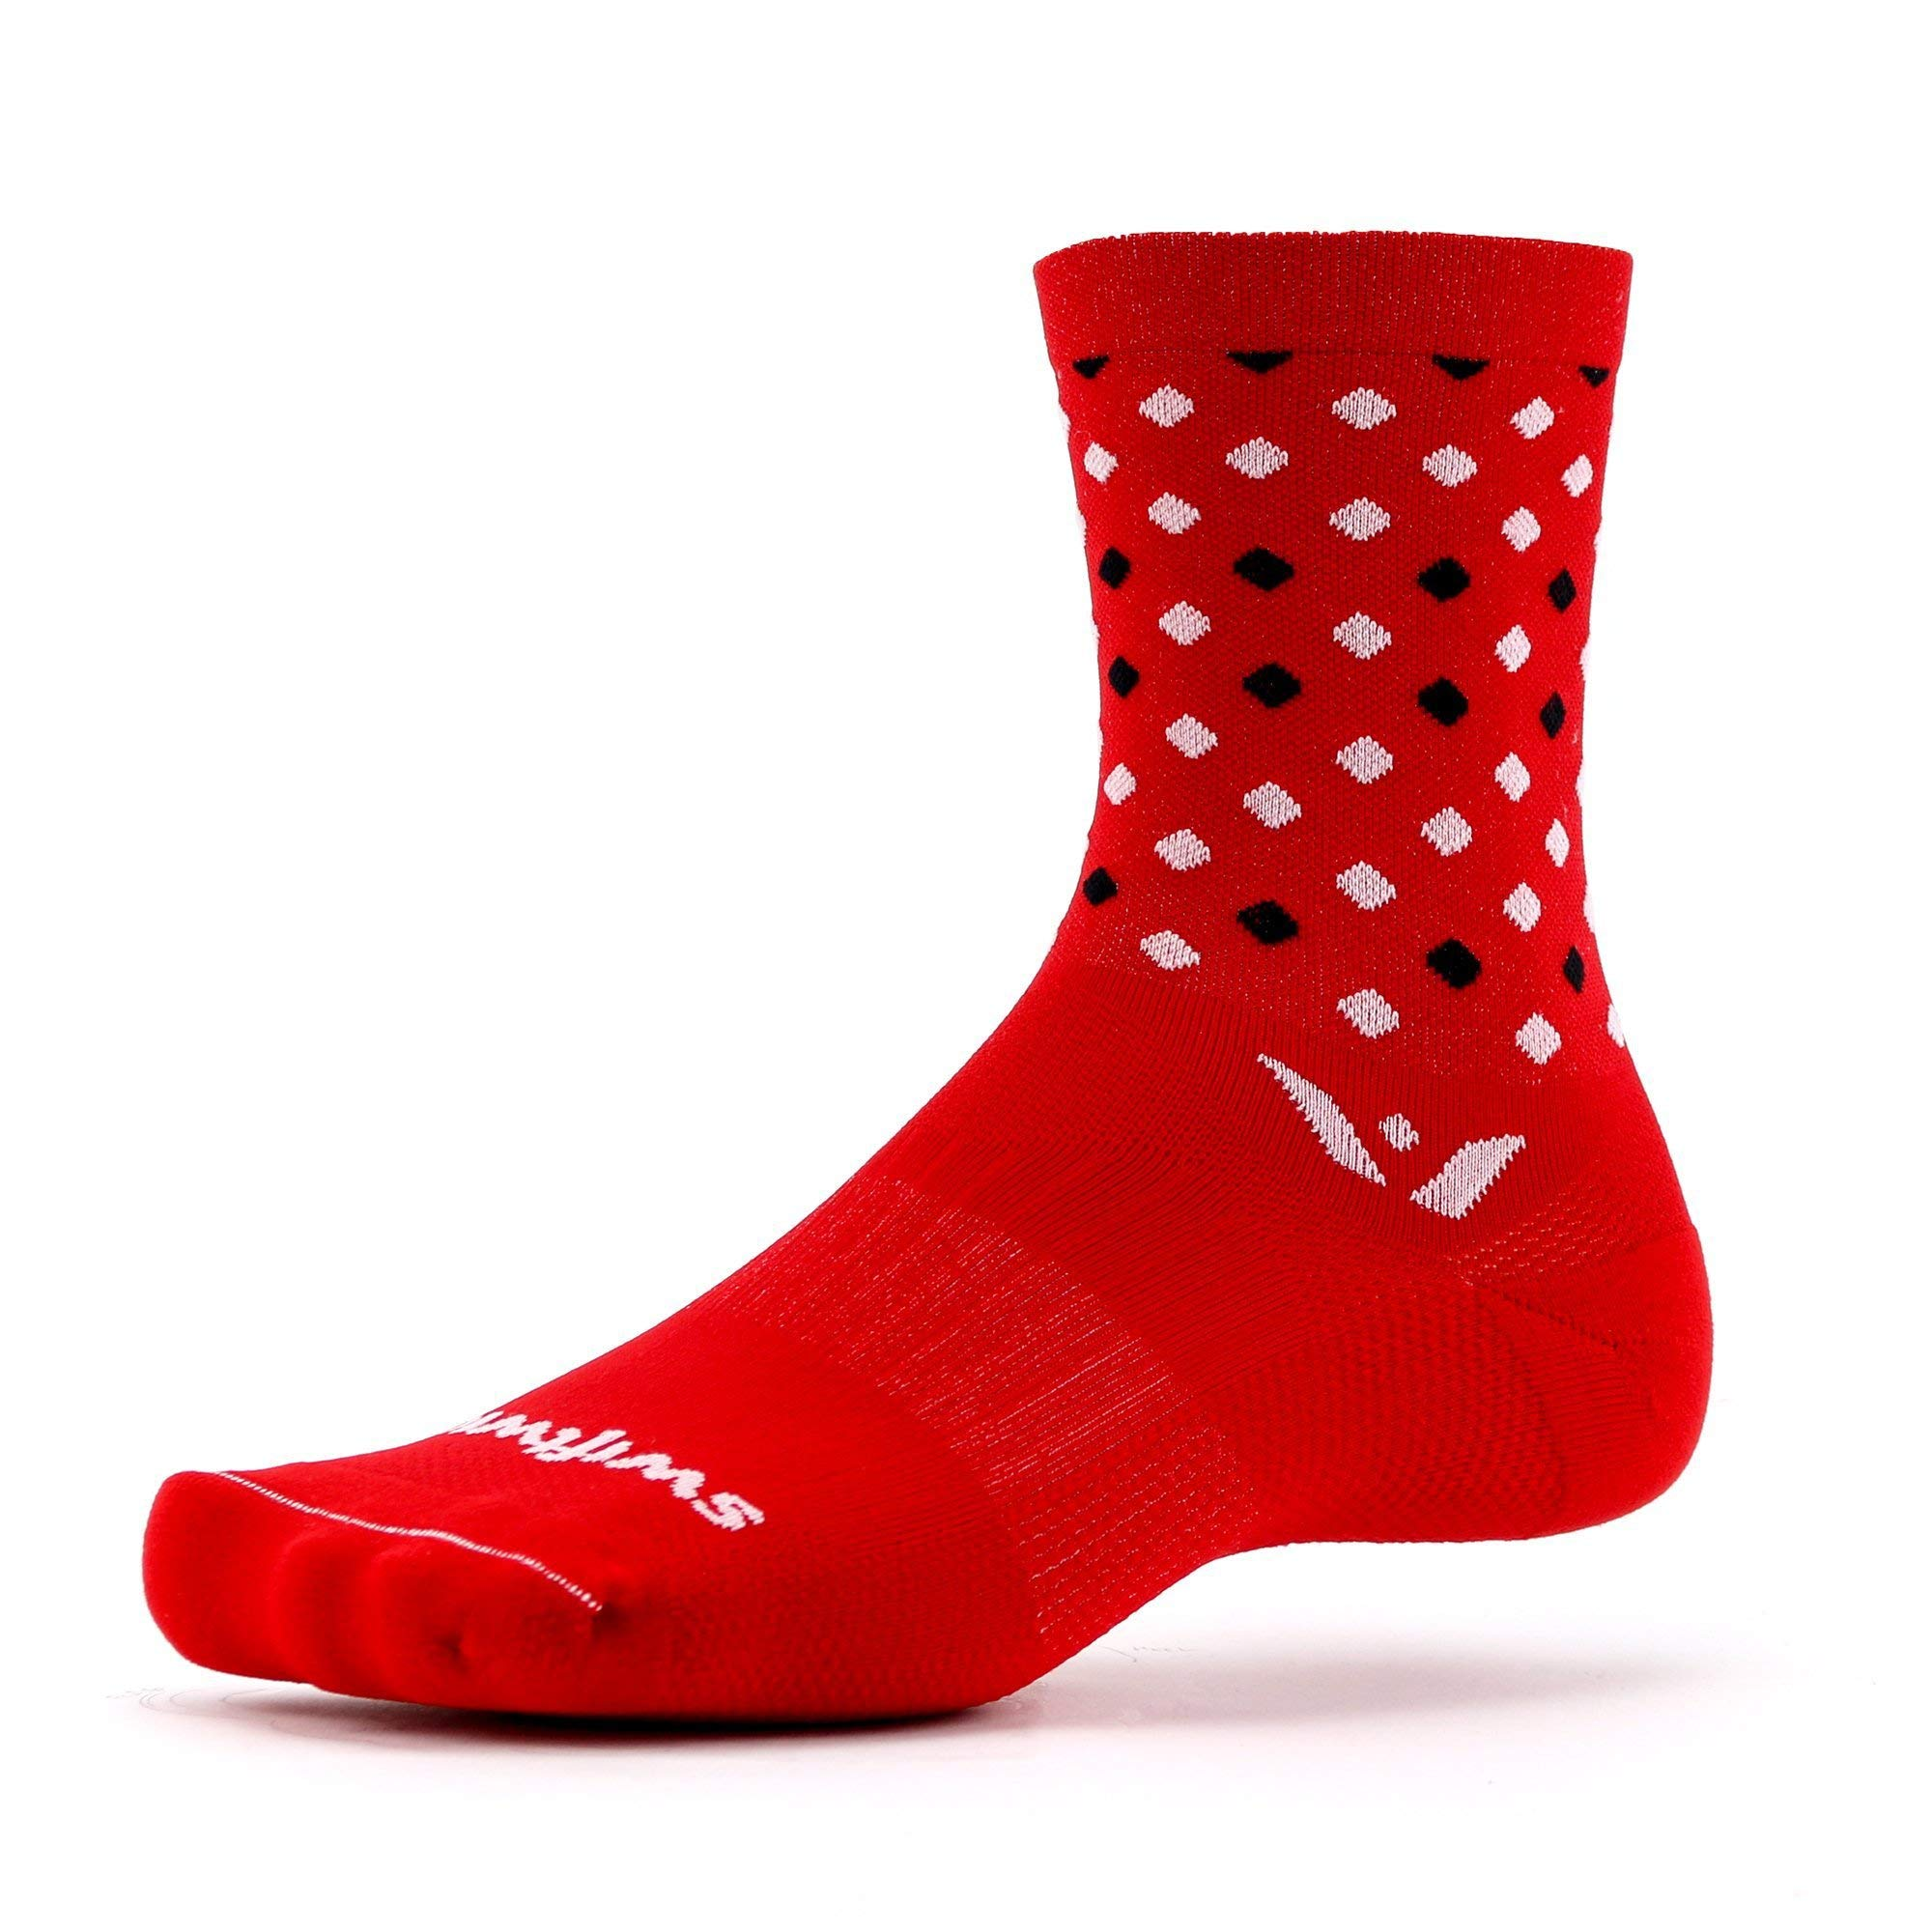 Swiftwick- VISION FIVE RAZZLE Running & Cycling Socks, Performance Crew Socks